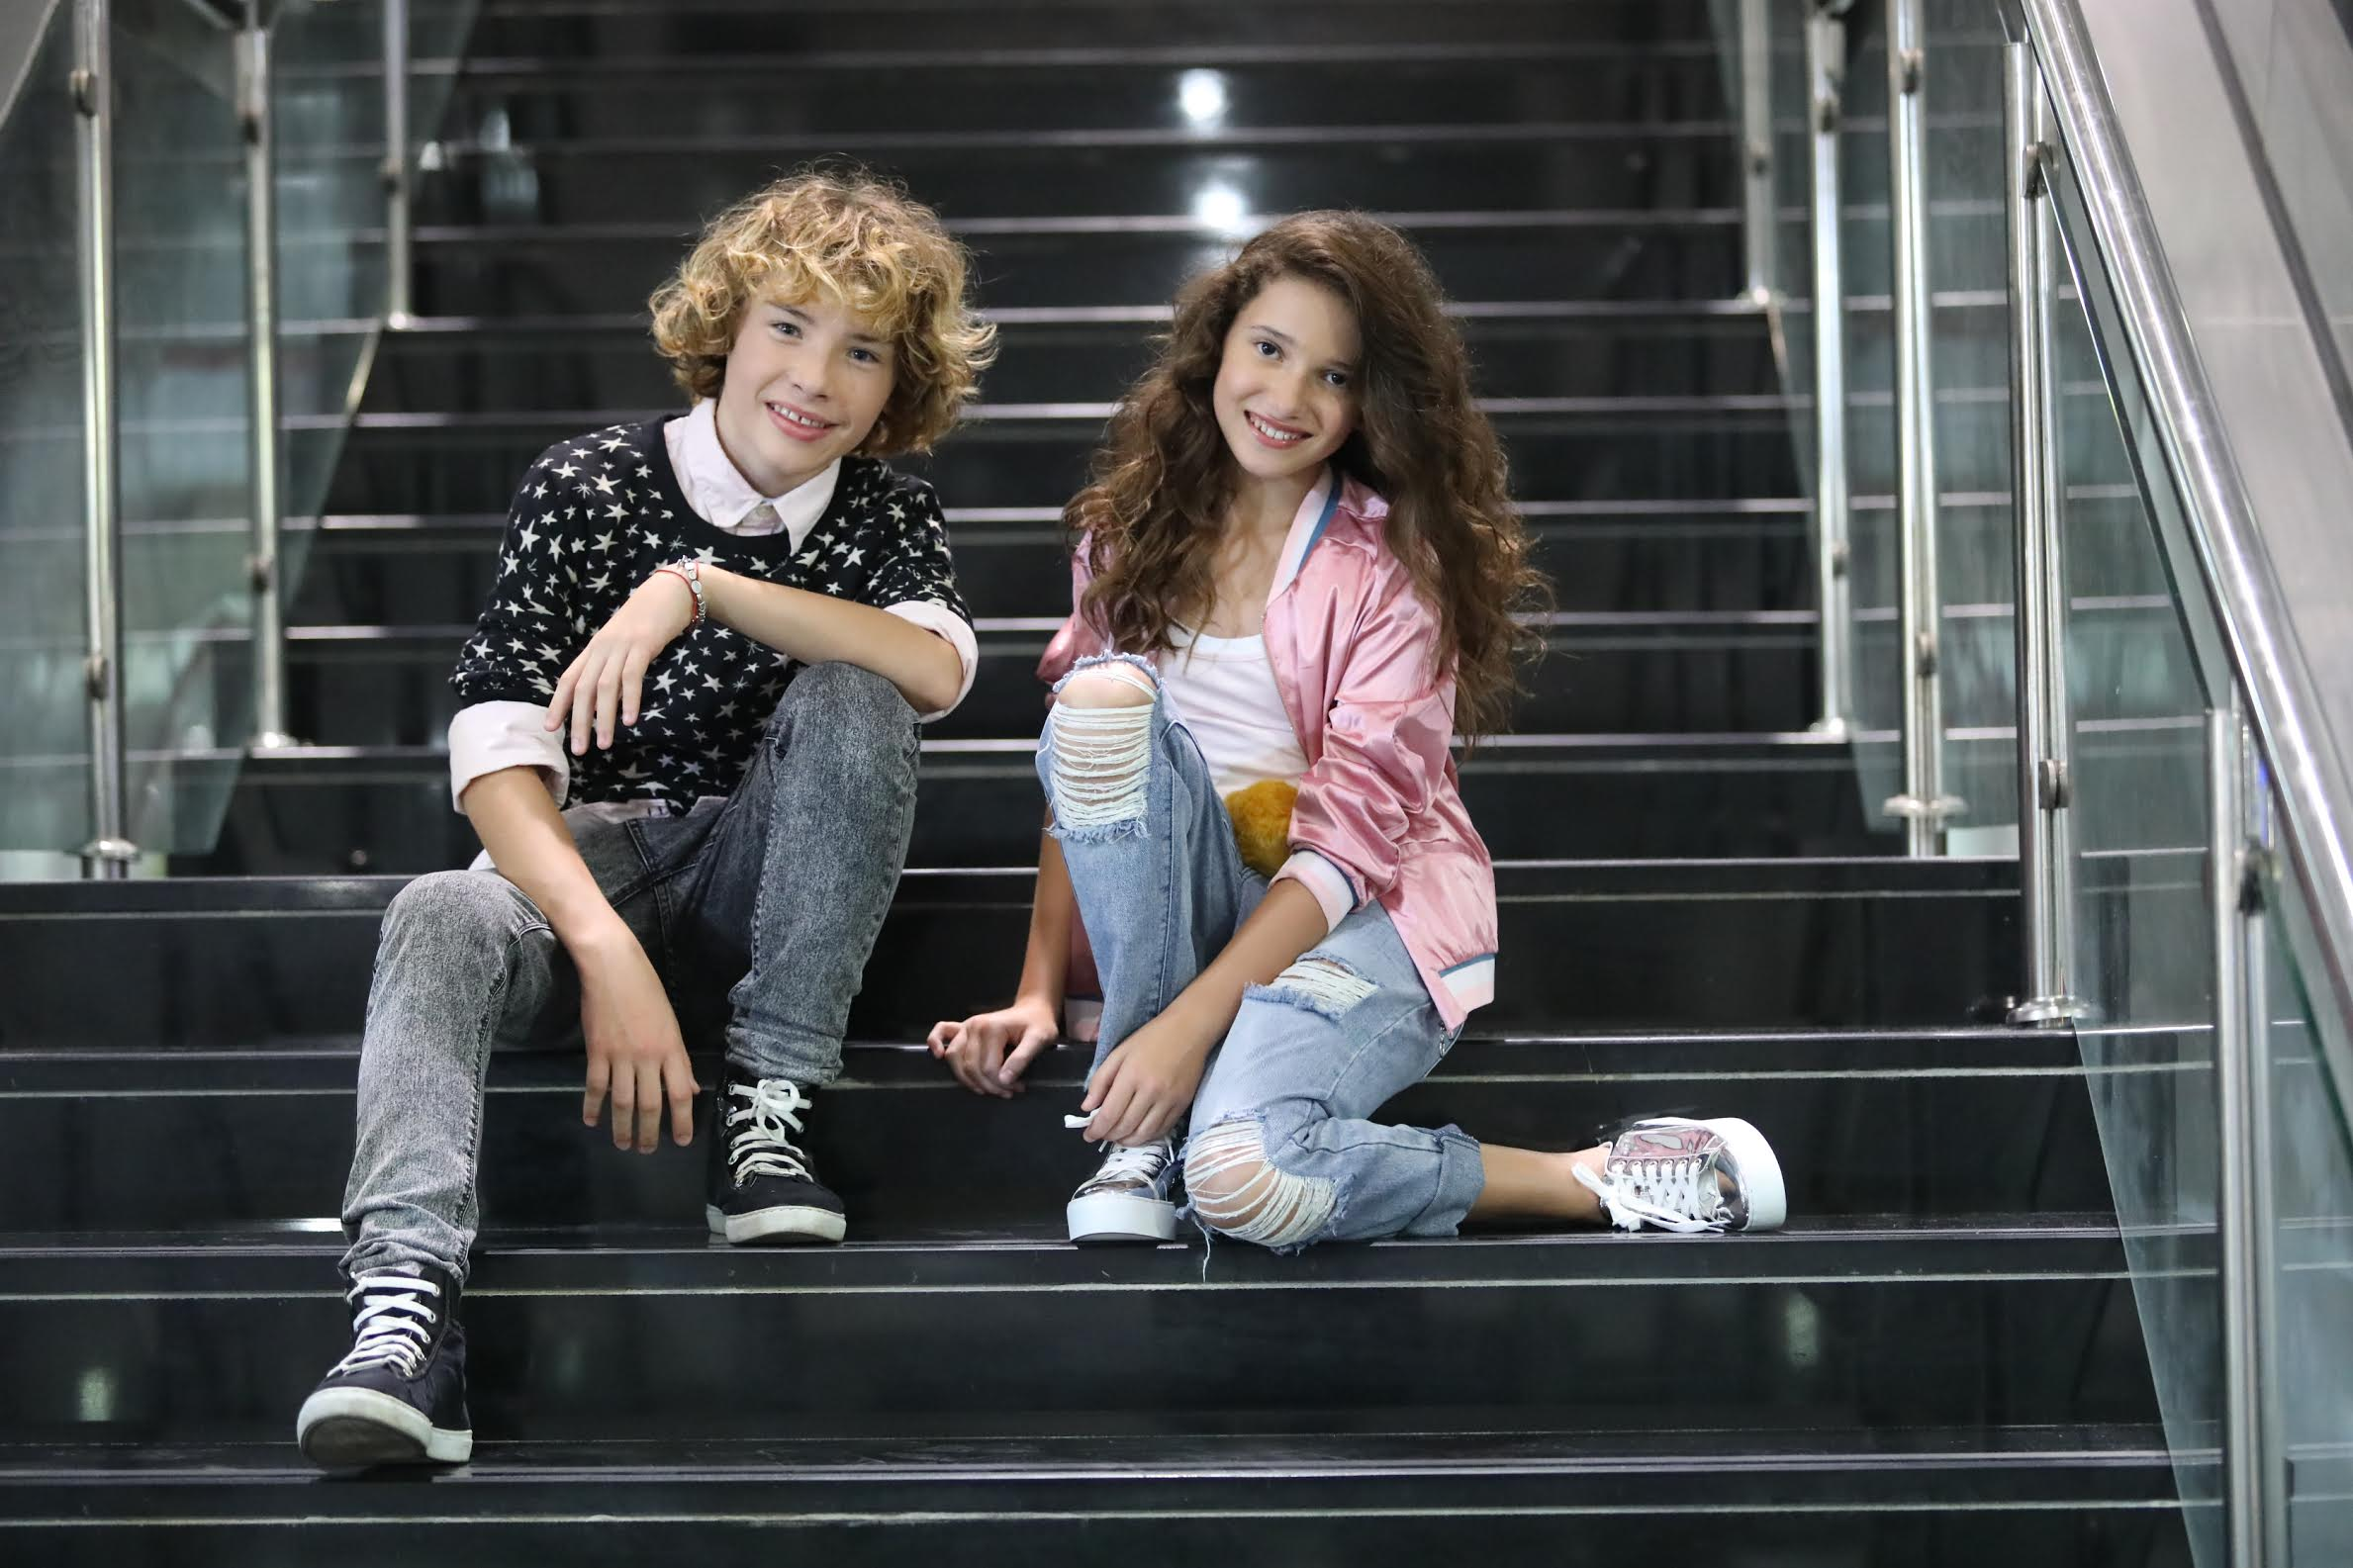 shir-and-tim-junior-eurovision-israel-2016